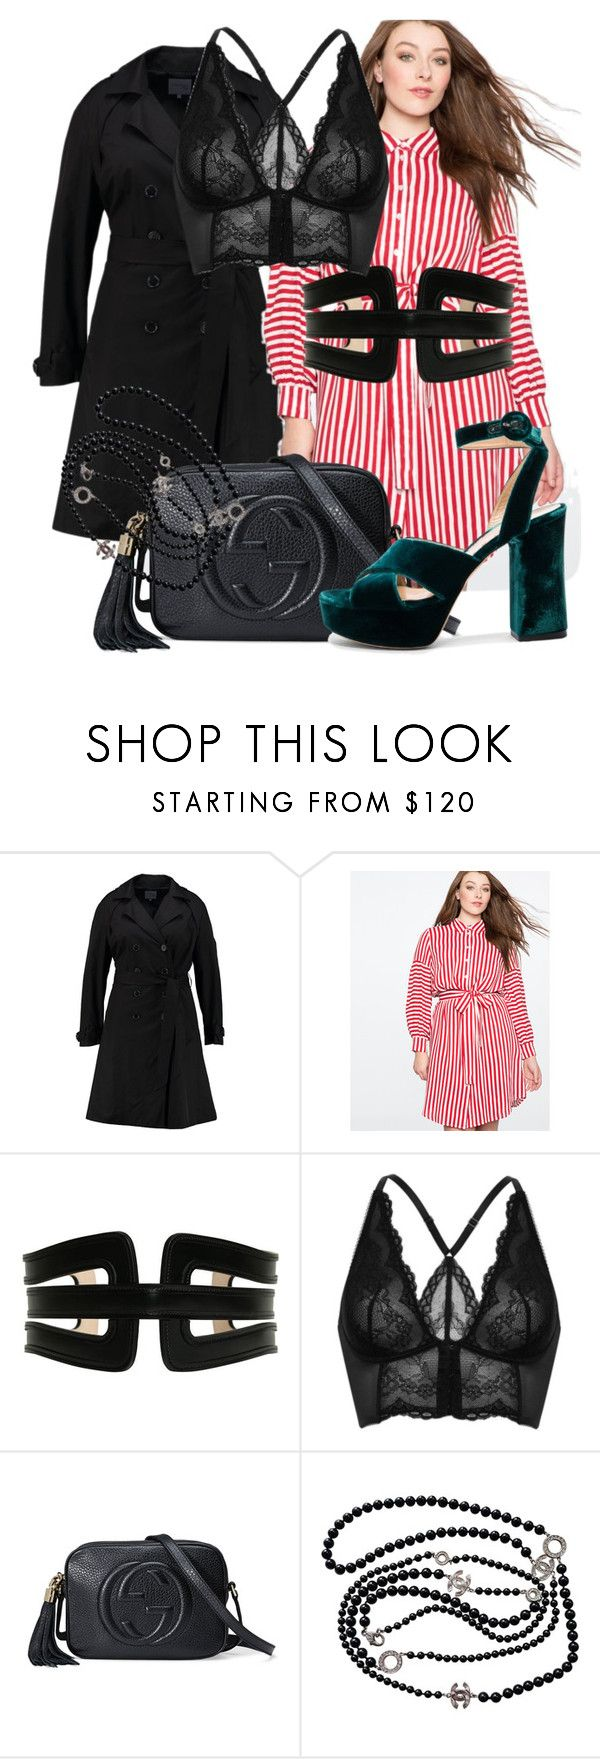 """""""open the blouse"""" by honeysuckelle ❤ liked on Polyvore featuring Anna Field, Balmain, Gossard, Gucci, Chanel, Gianvito Rossi, contestentry and nyfwstreetstyle"""